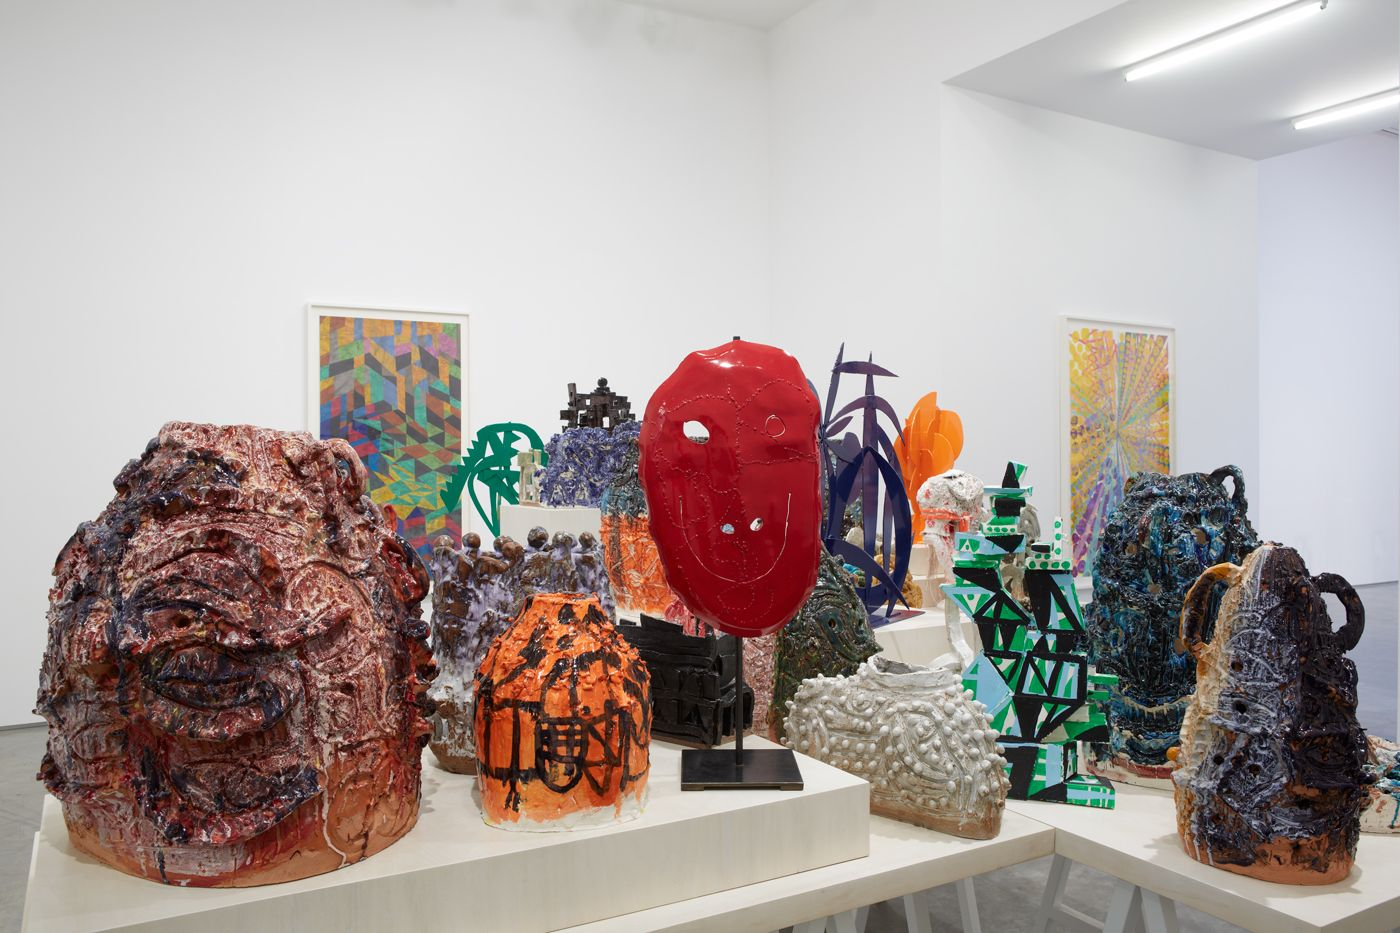 an exhibition of ceramic artworks by william j. o'brien in a new york art gallery